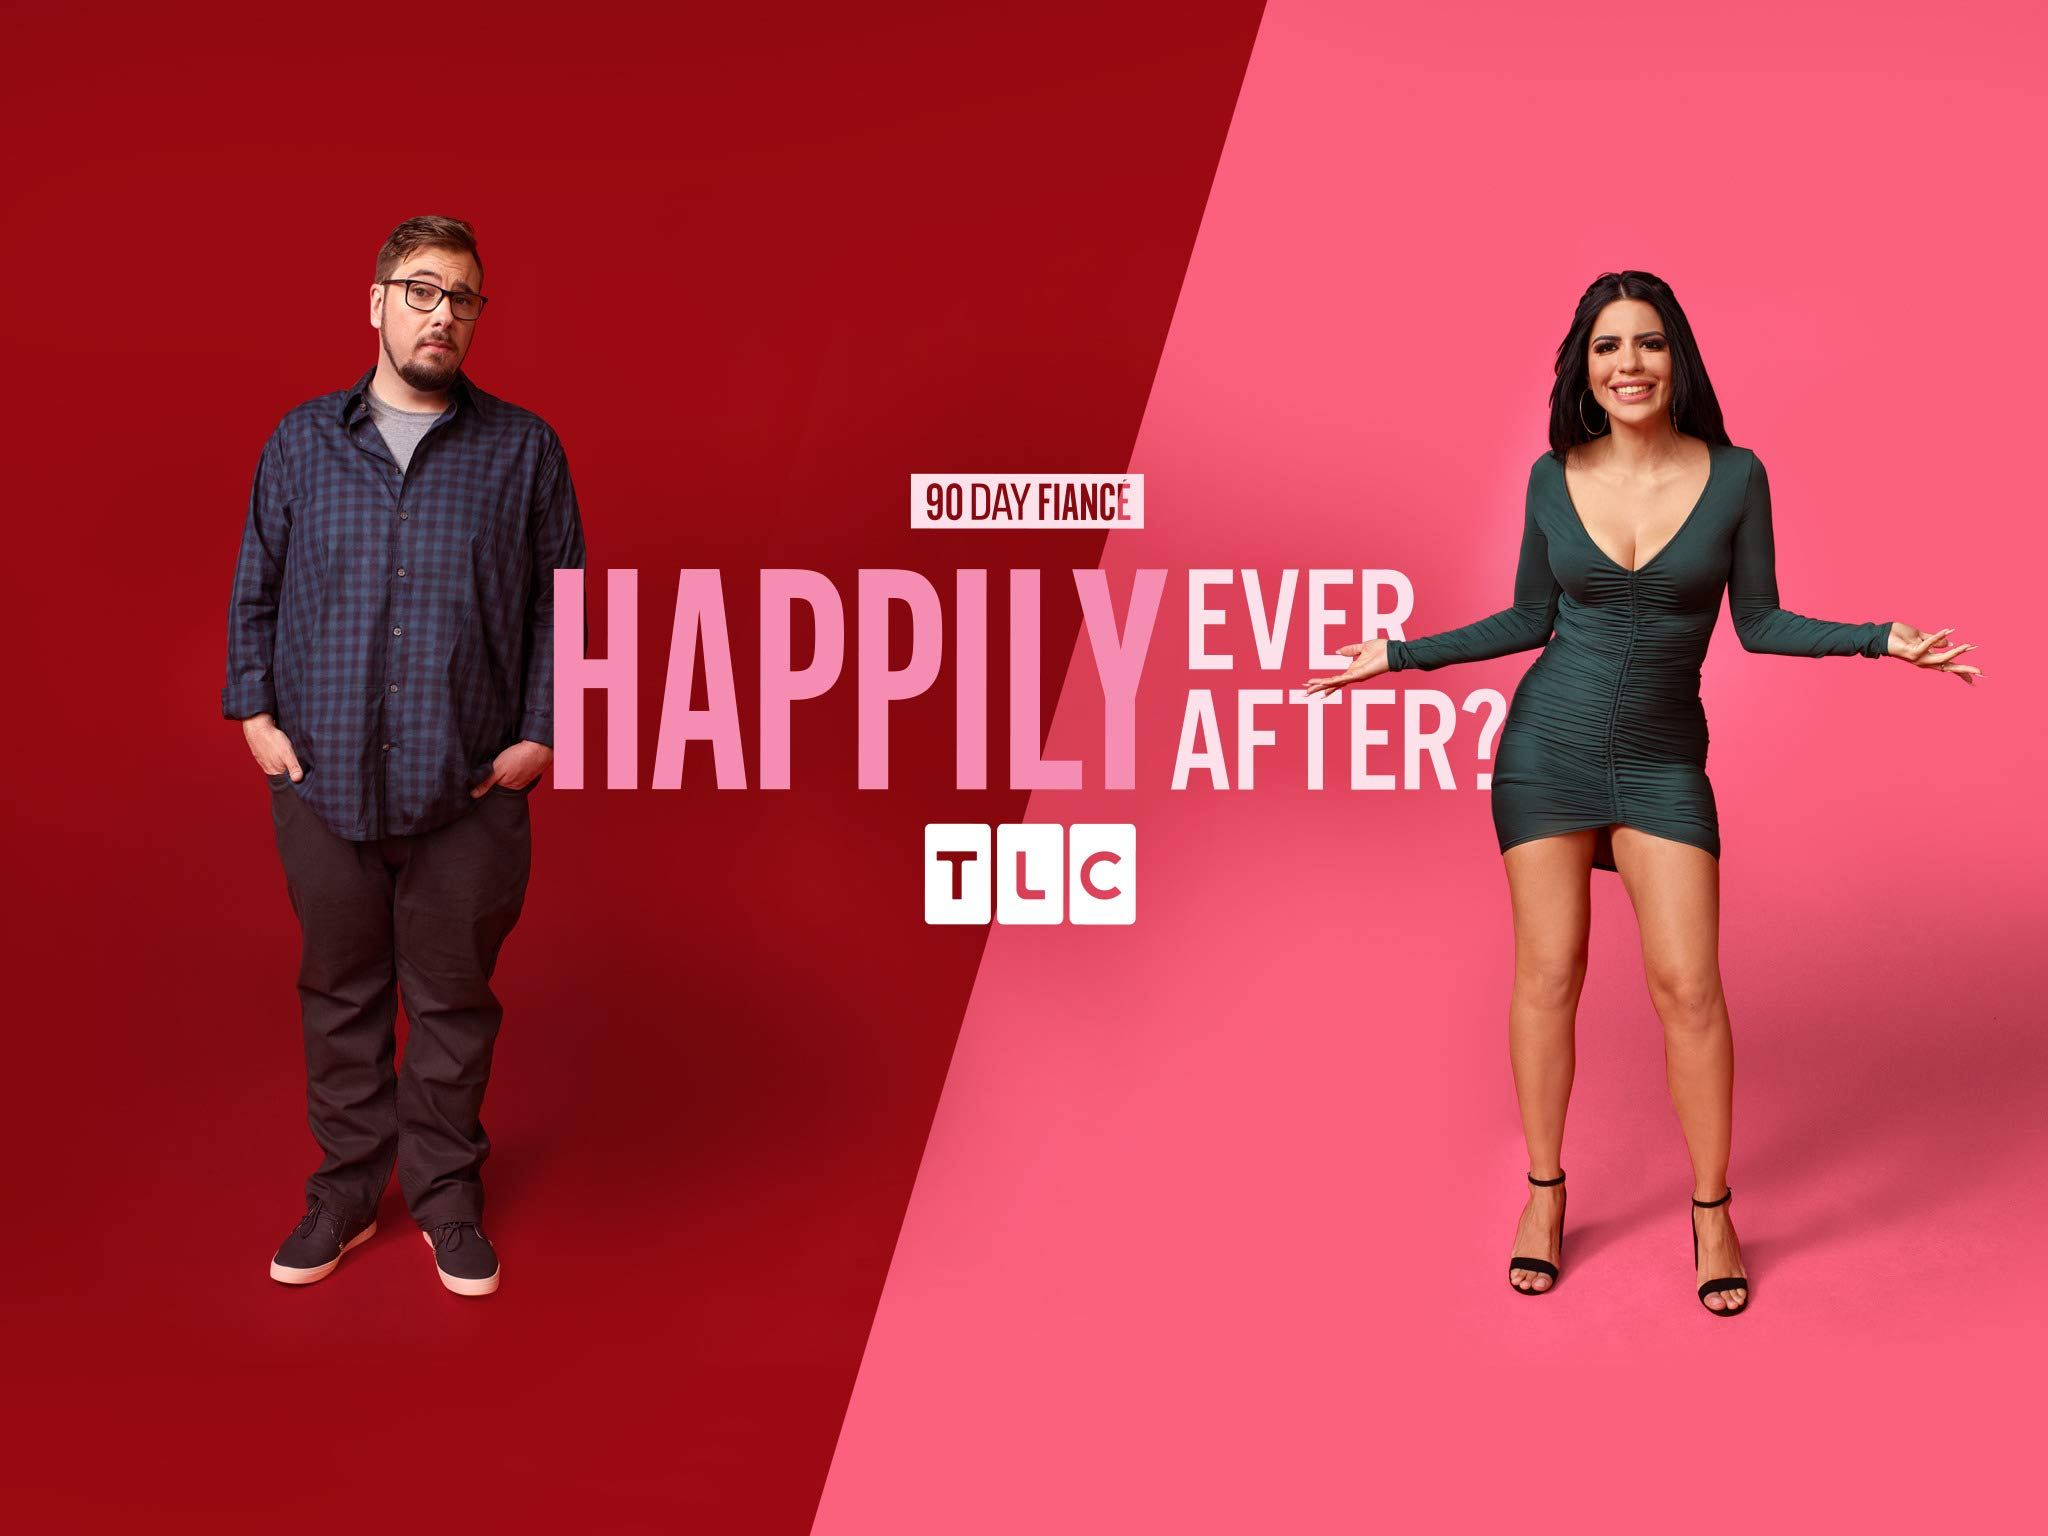 Should We Expect 90 Day Fiancé Happily Ever After Season 6 Episode 18?